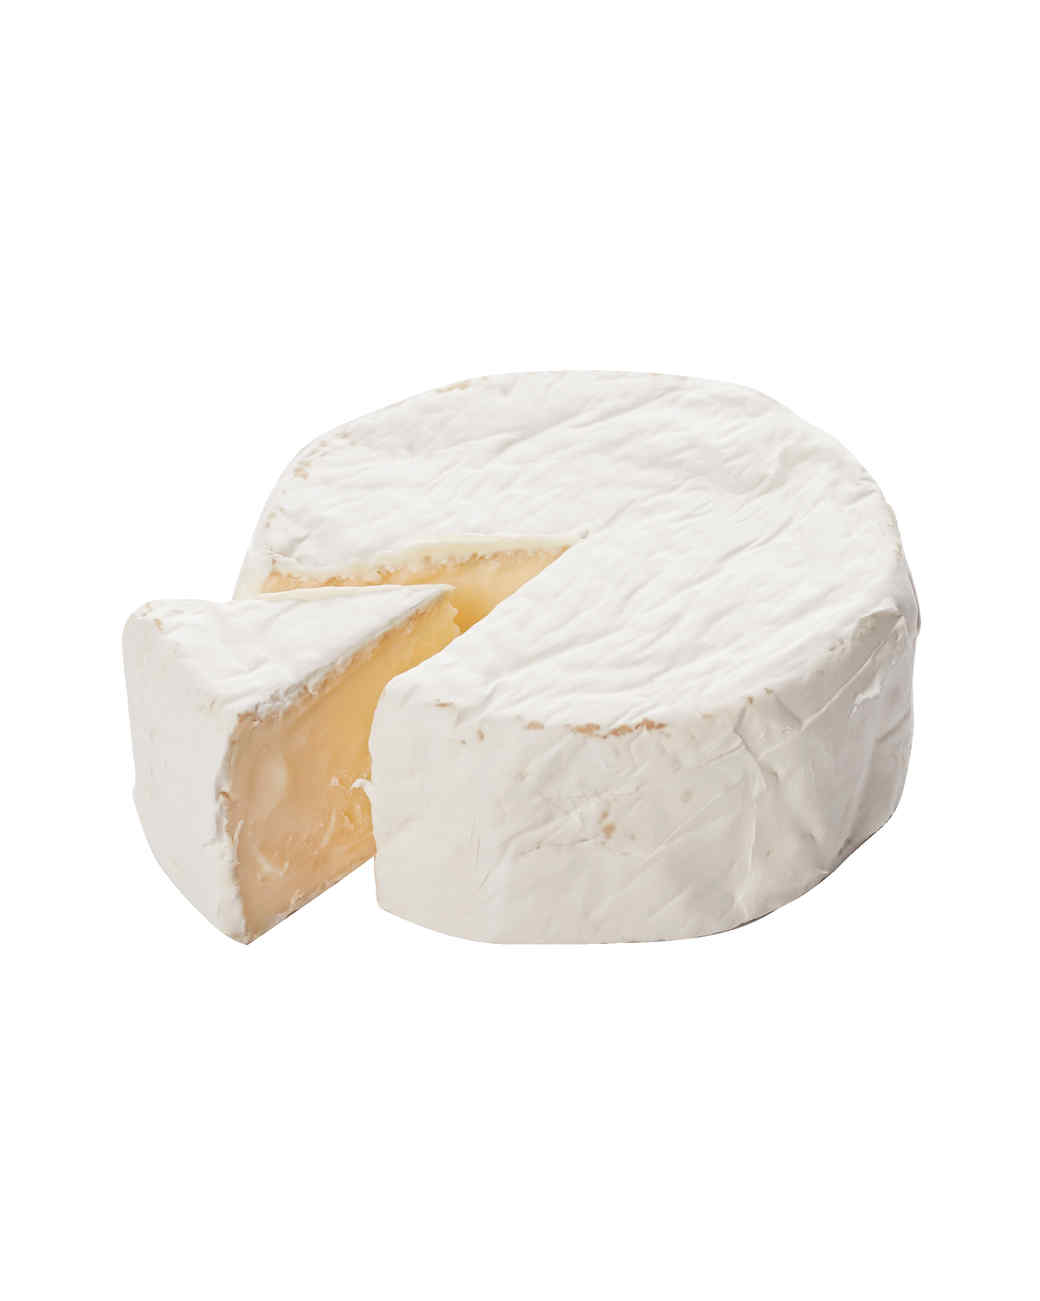 camembert-cheese-036-d111263.jpg